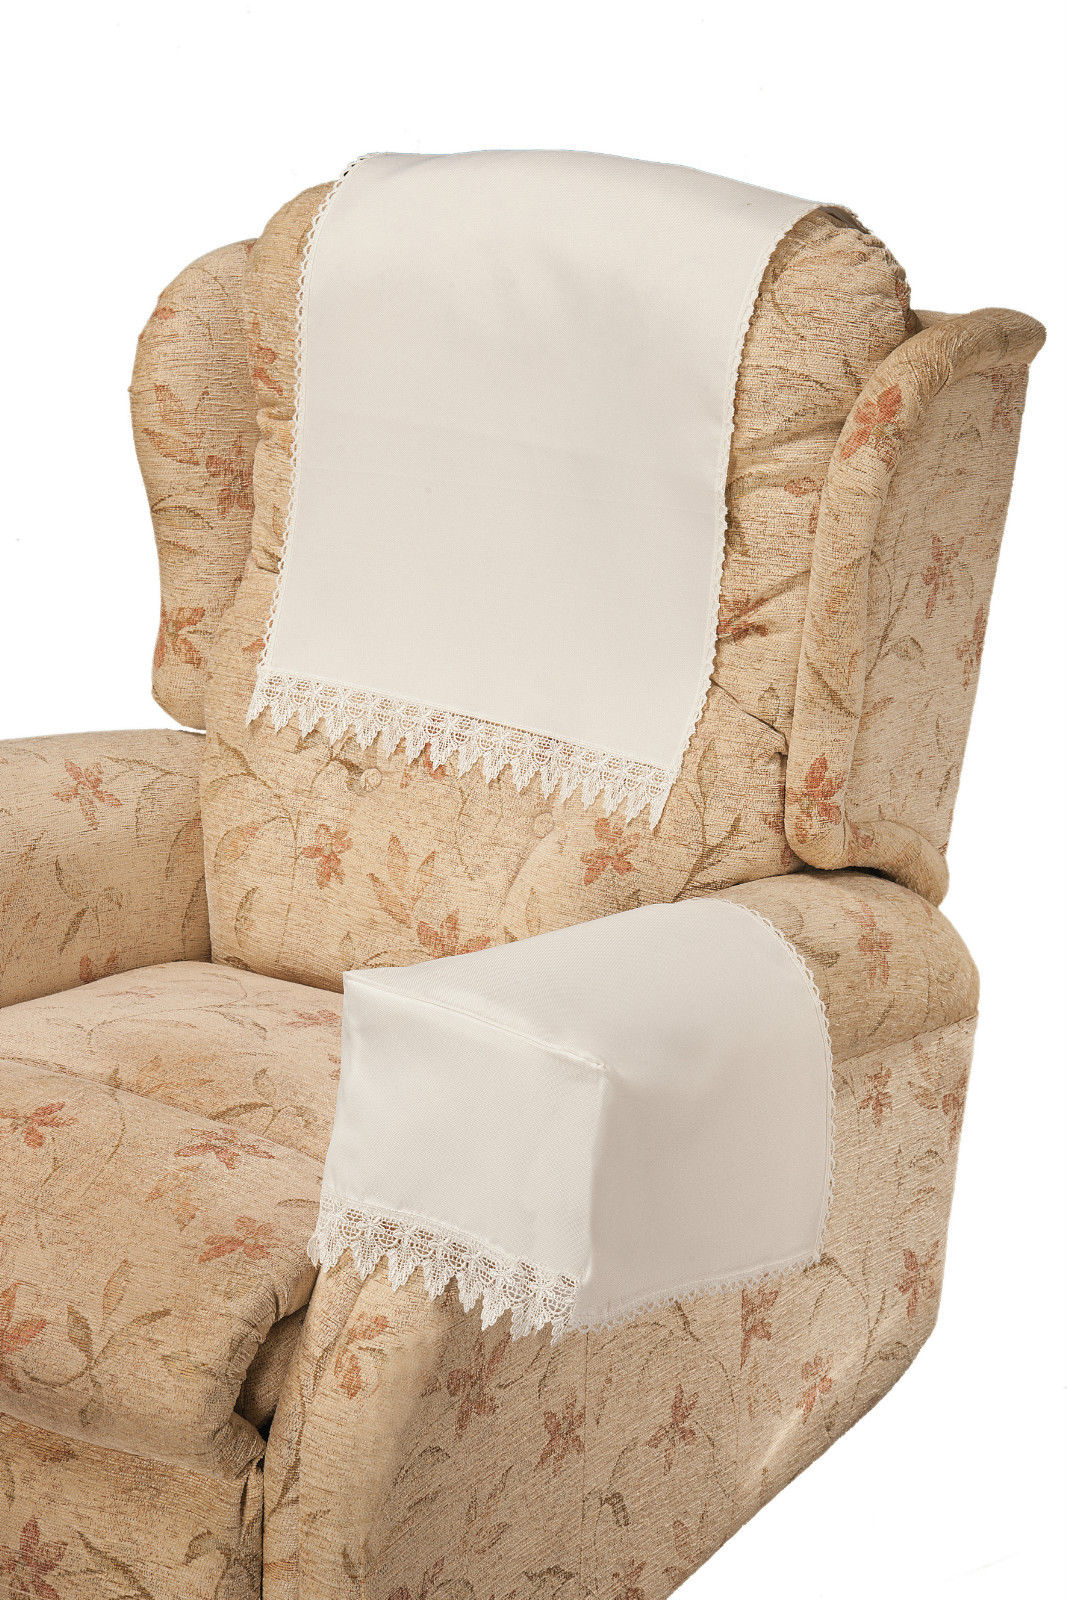 chair covers set of 6 plans for adirondack footstool comet white arm and 5 backs with